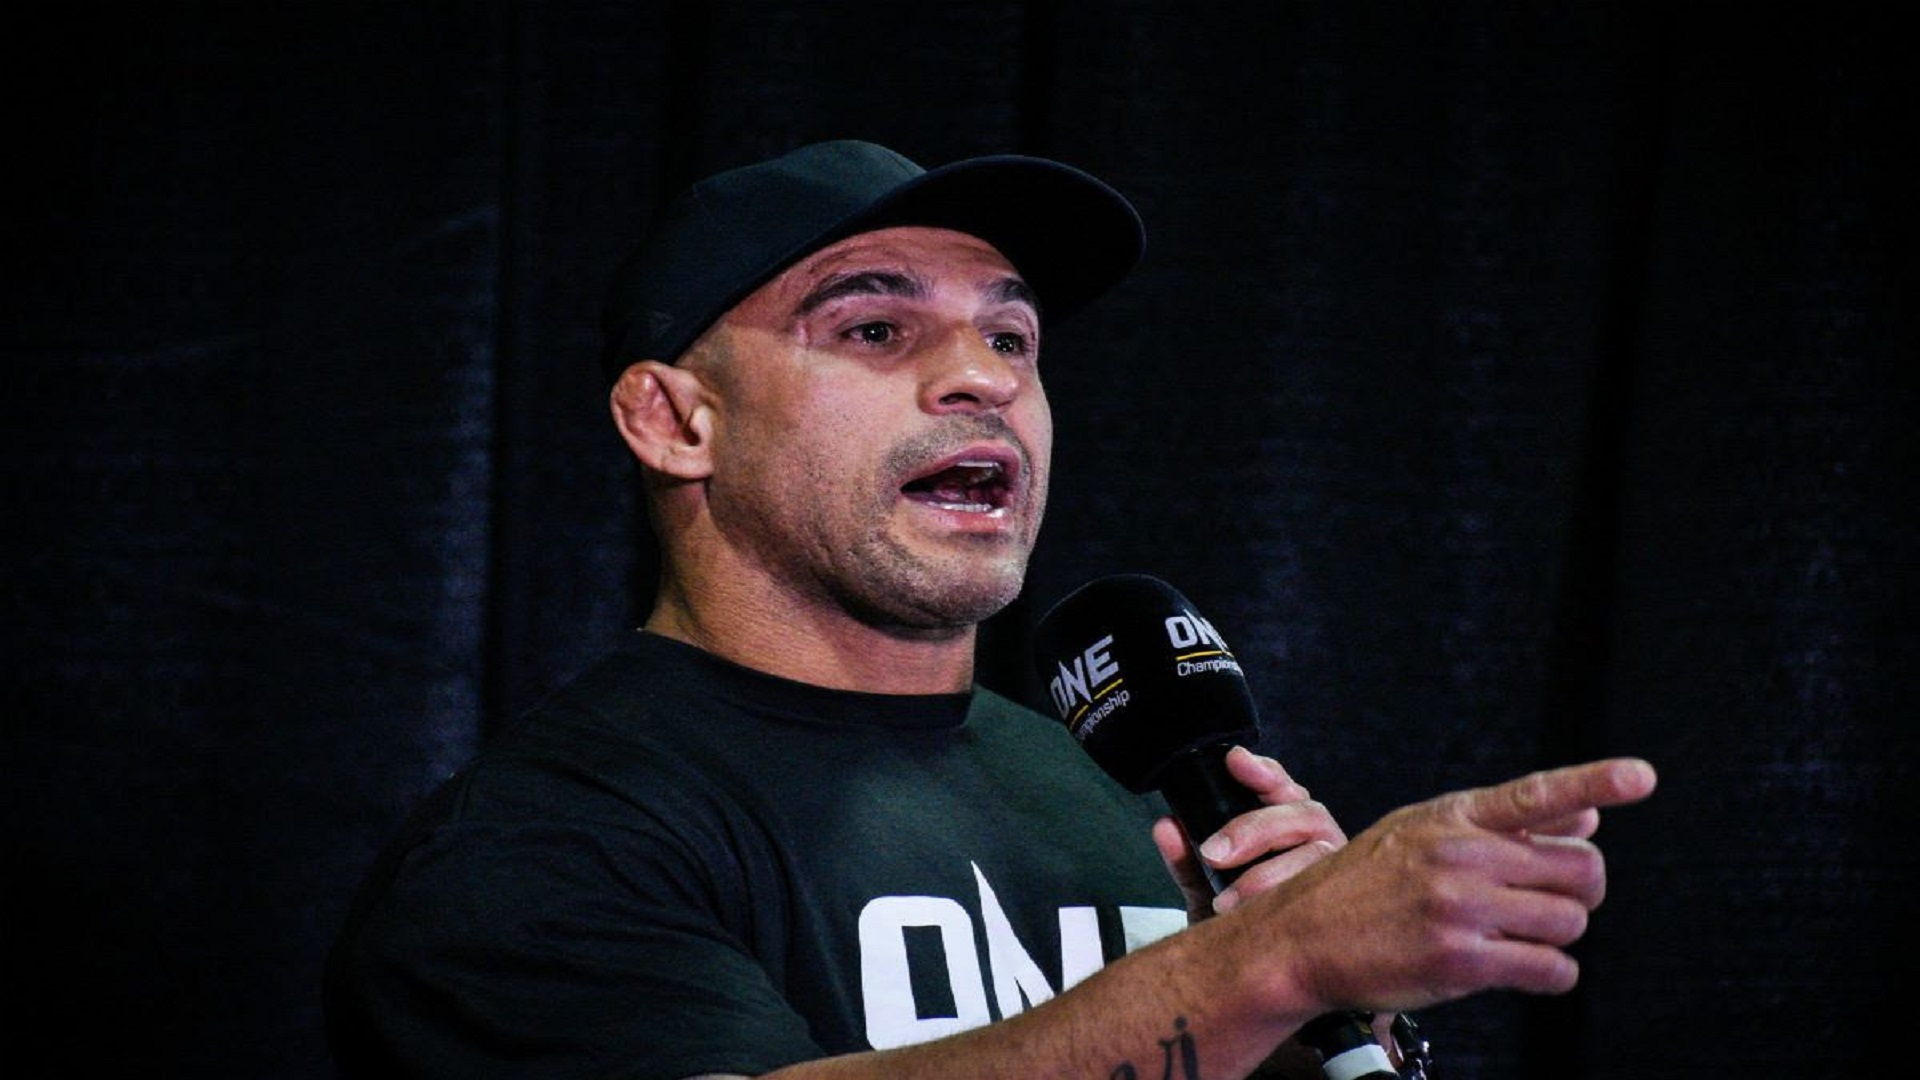 https://lockerroom.in/blog/view/Mike-Tyson-Vitor-Belfort-AEW